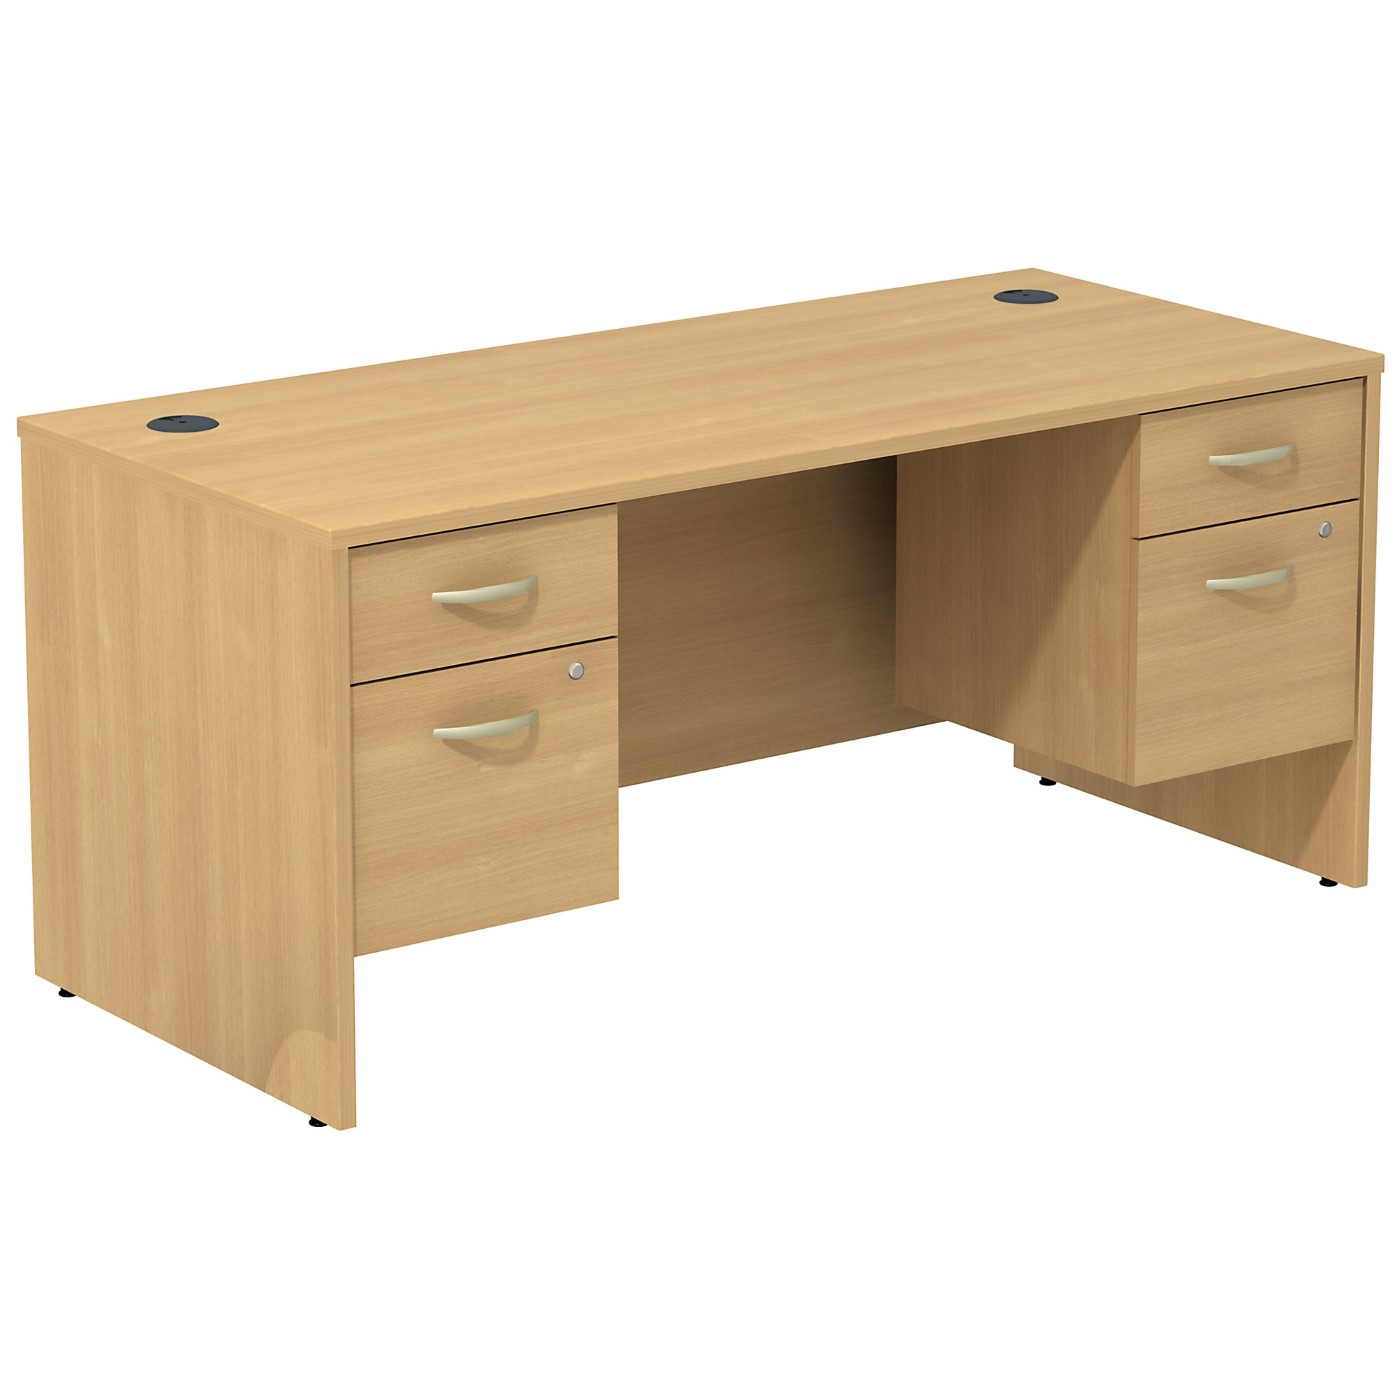 BUSH BUSINESS FURNITURE SERIES C DESK WITH (2) 3/4 PEDESTALS. FREE SHIPPING